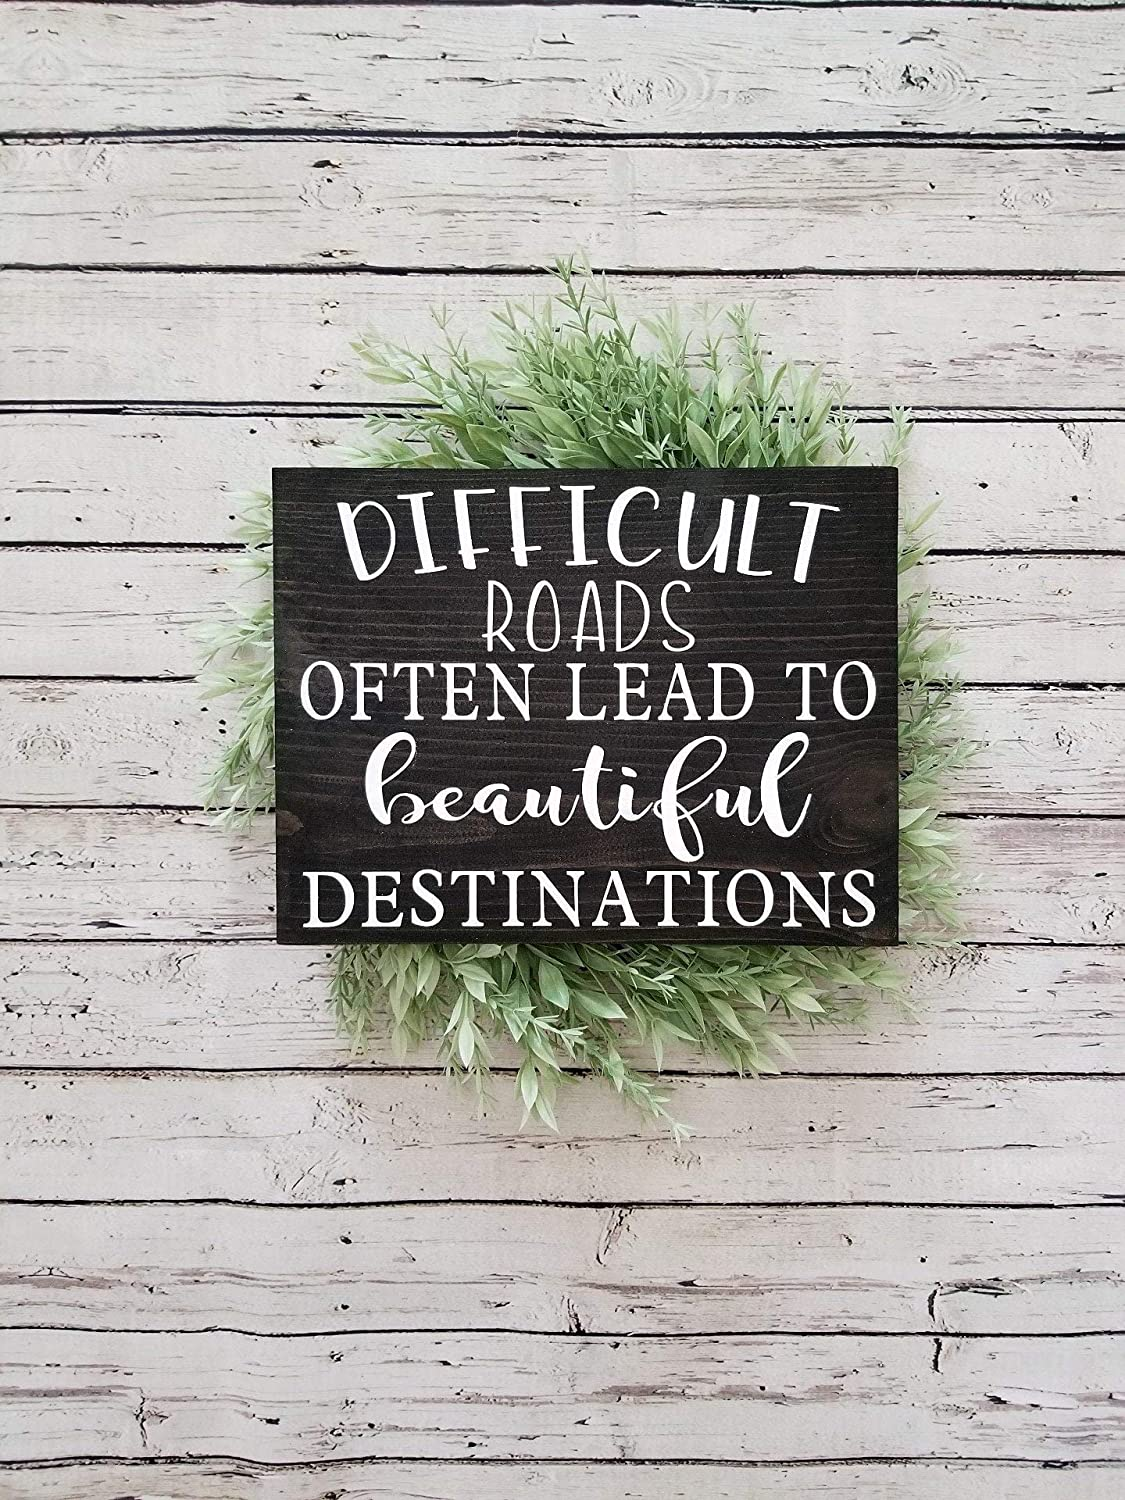 PotteLove Difficult Roads Often Lead to Beautiful Destinations - Wood Sign - Farmhouse Decor - Rustic Home Decor,Rustic Wooden Plaque Wall Art Hanging Sign 12